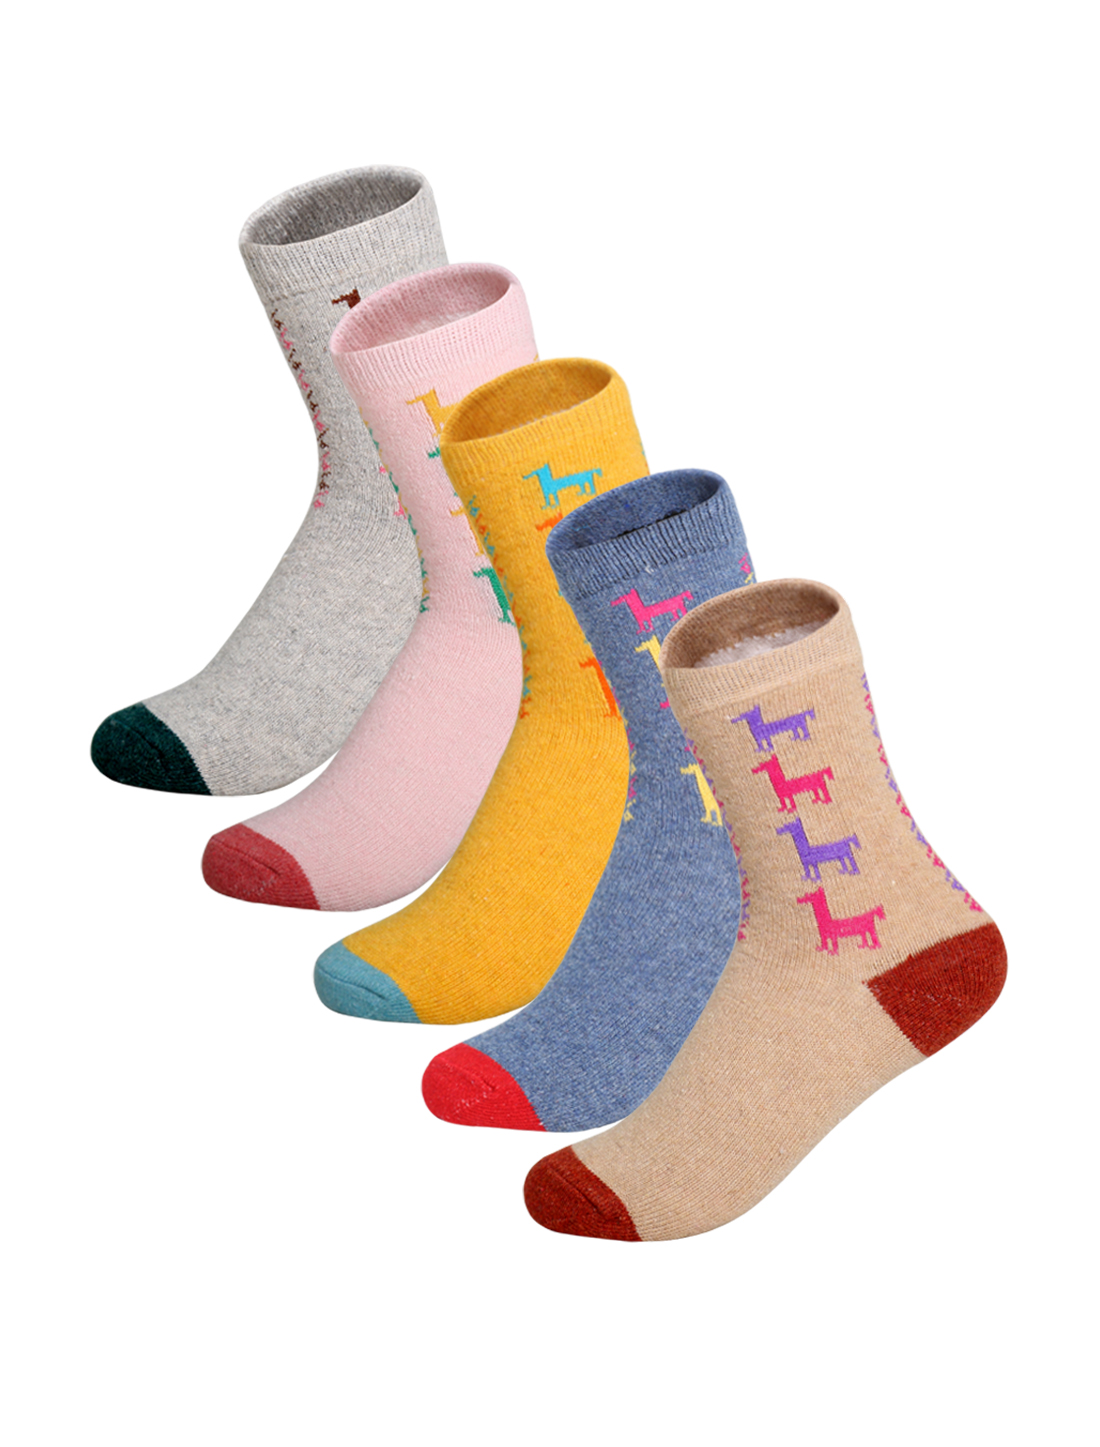 Women 5 Pack Elastic Cuffs Ankle High Horse Socks Assorted 9-11